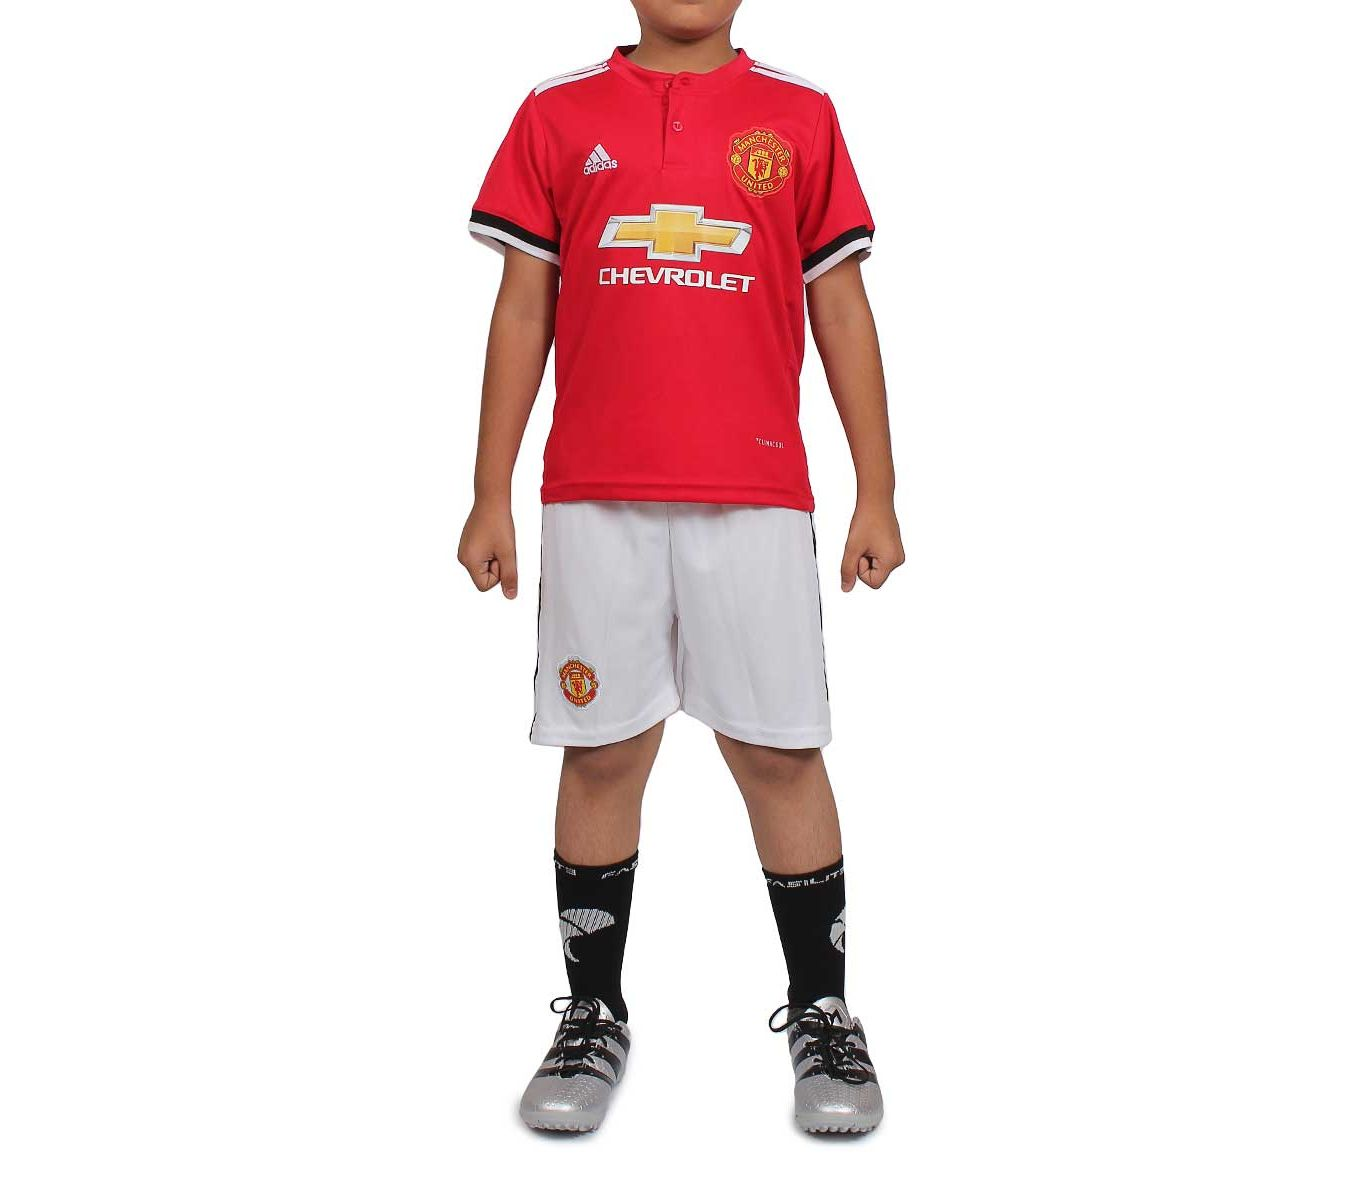 finest selection 5324f b854f Fasilite Manchester United - Half Sleeves - Kids Home Kit - 2017 / 2018